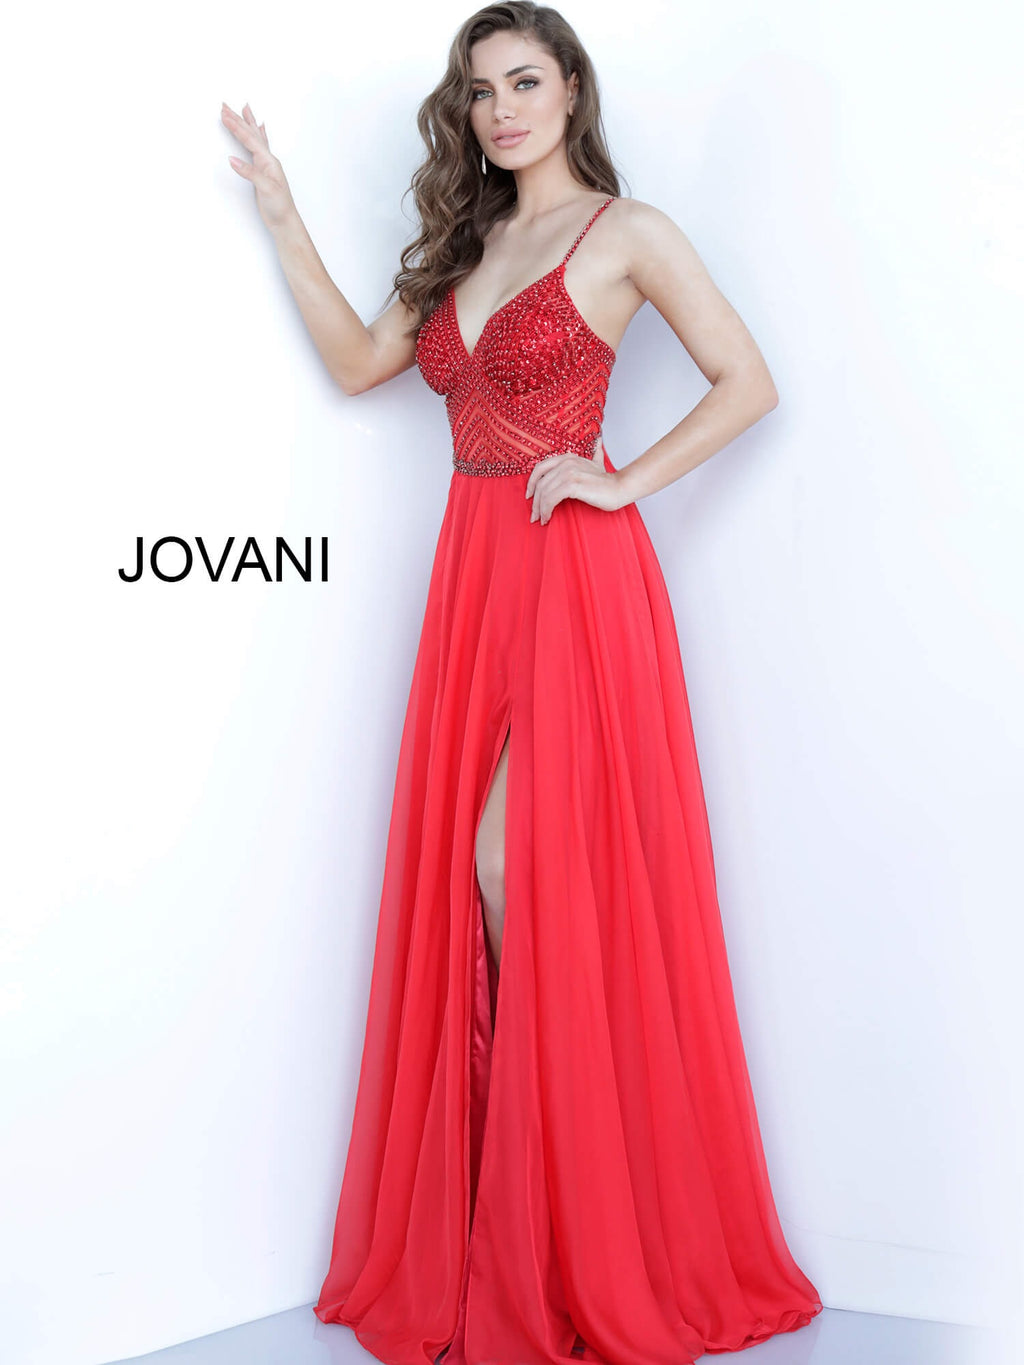 JOVANI 66925 Beaded Bodice Chiffon Evening Dress - CYC Boutique